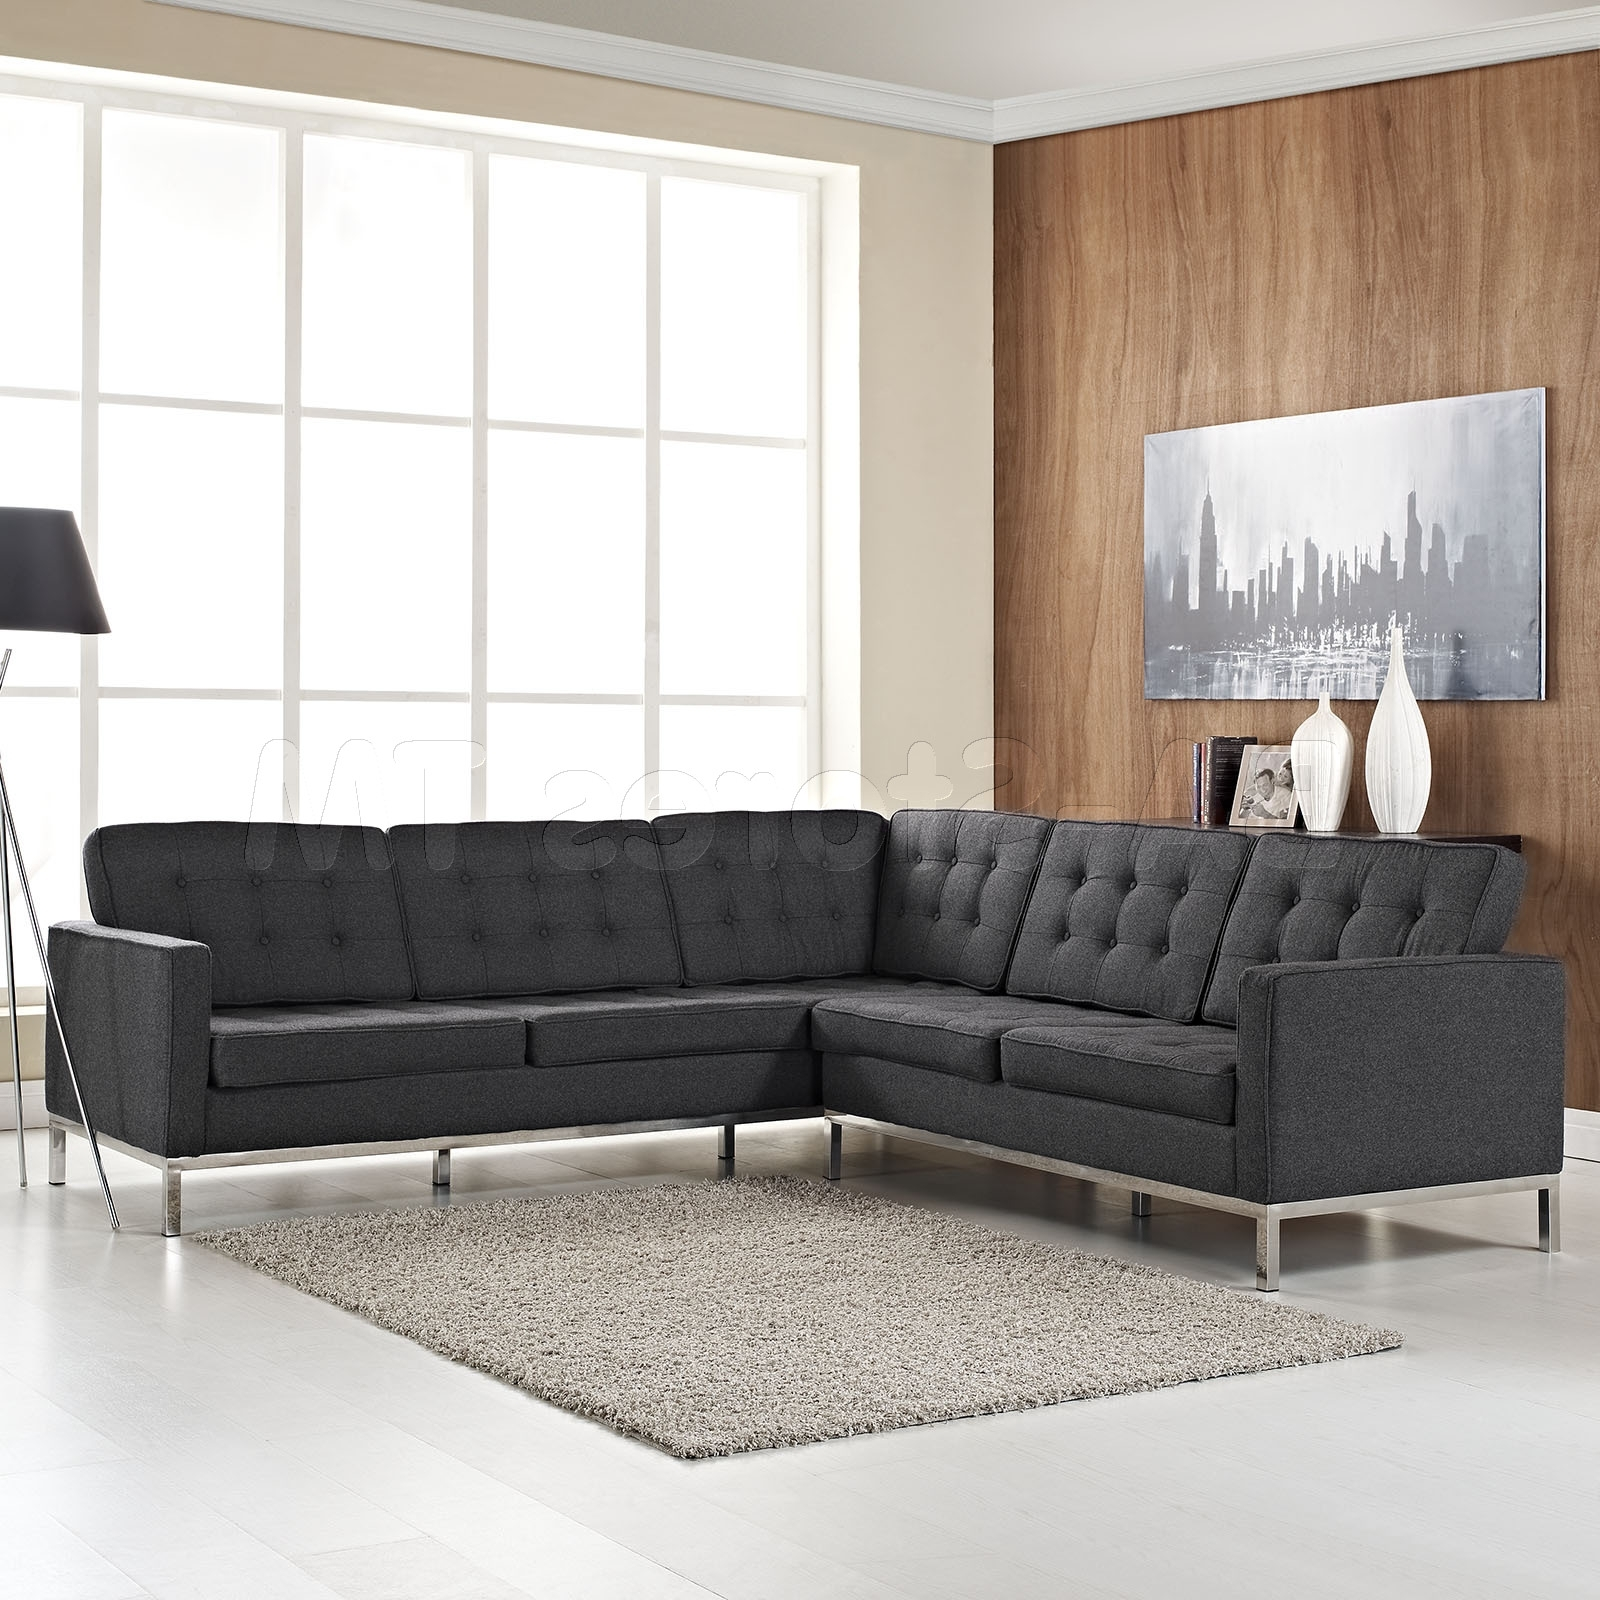 Well Known Couches Design New In Impressive Reversible Sectional Sofa Chaise Regarding Affordable Tufted Sofas (View 14 of 15)